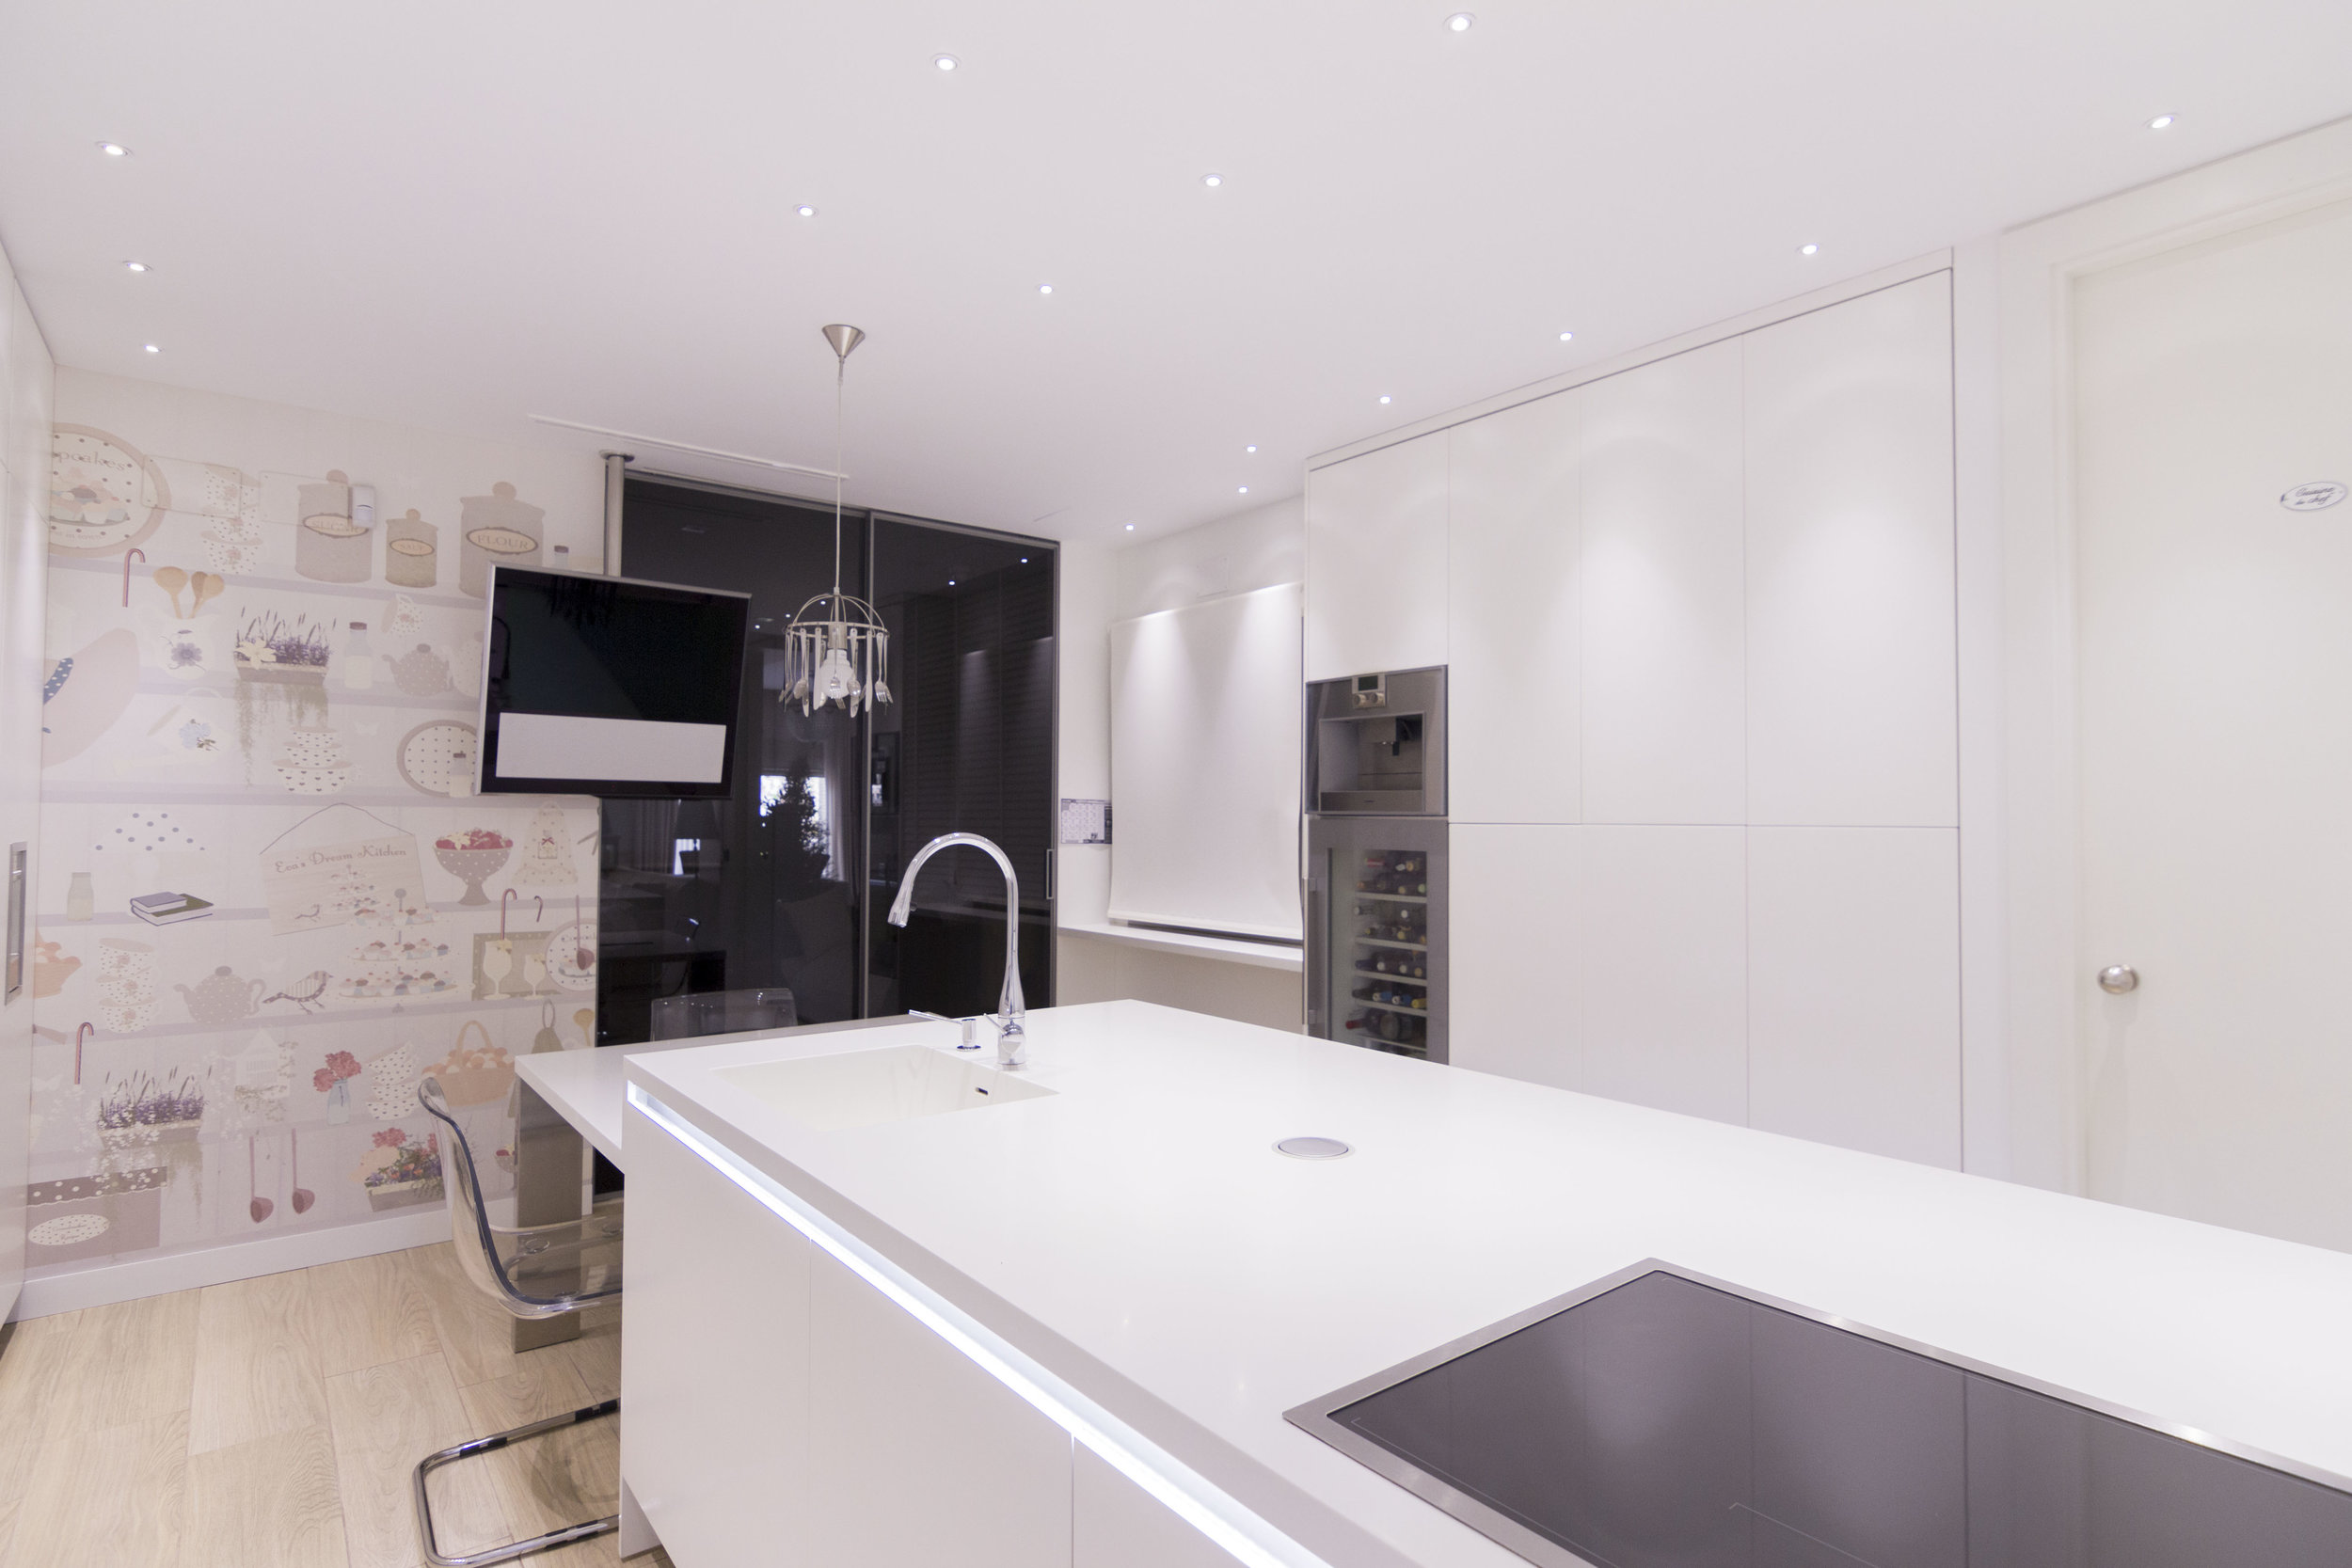 White kitchen and earth tones wallpaper in accent wall.